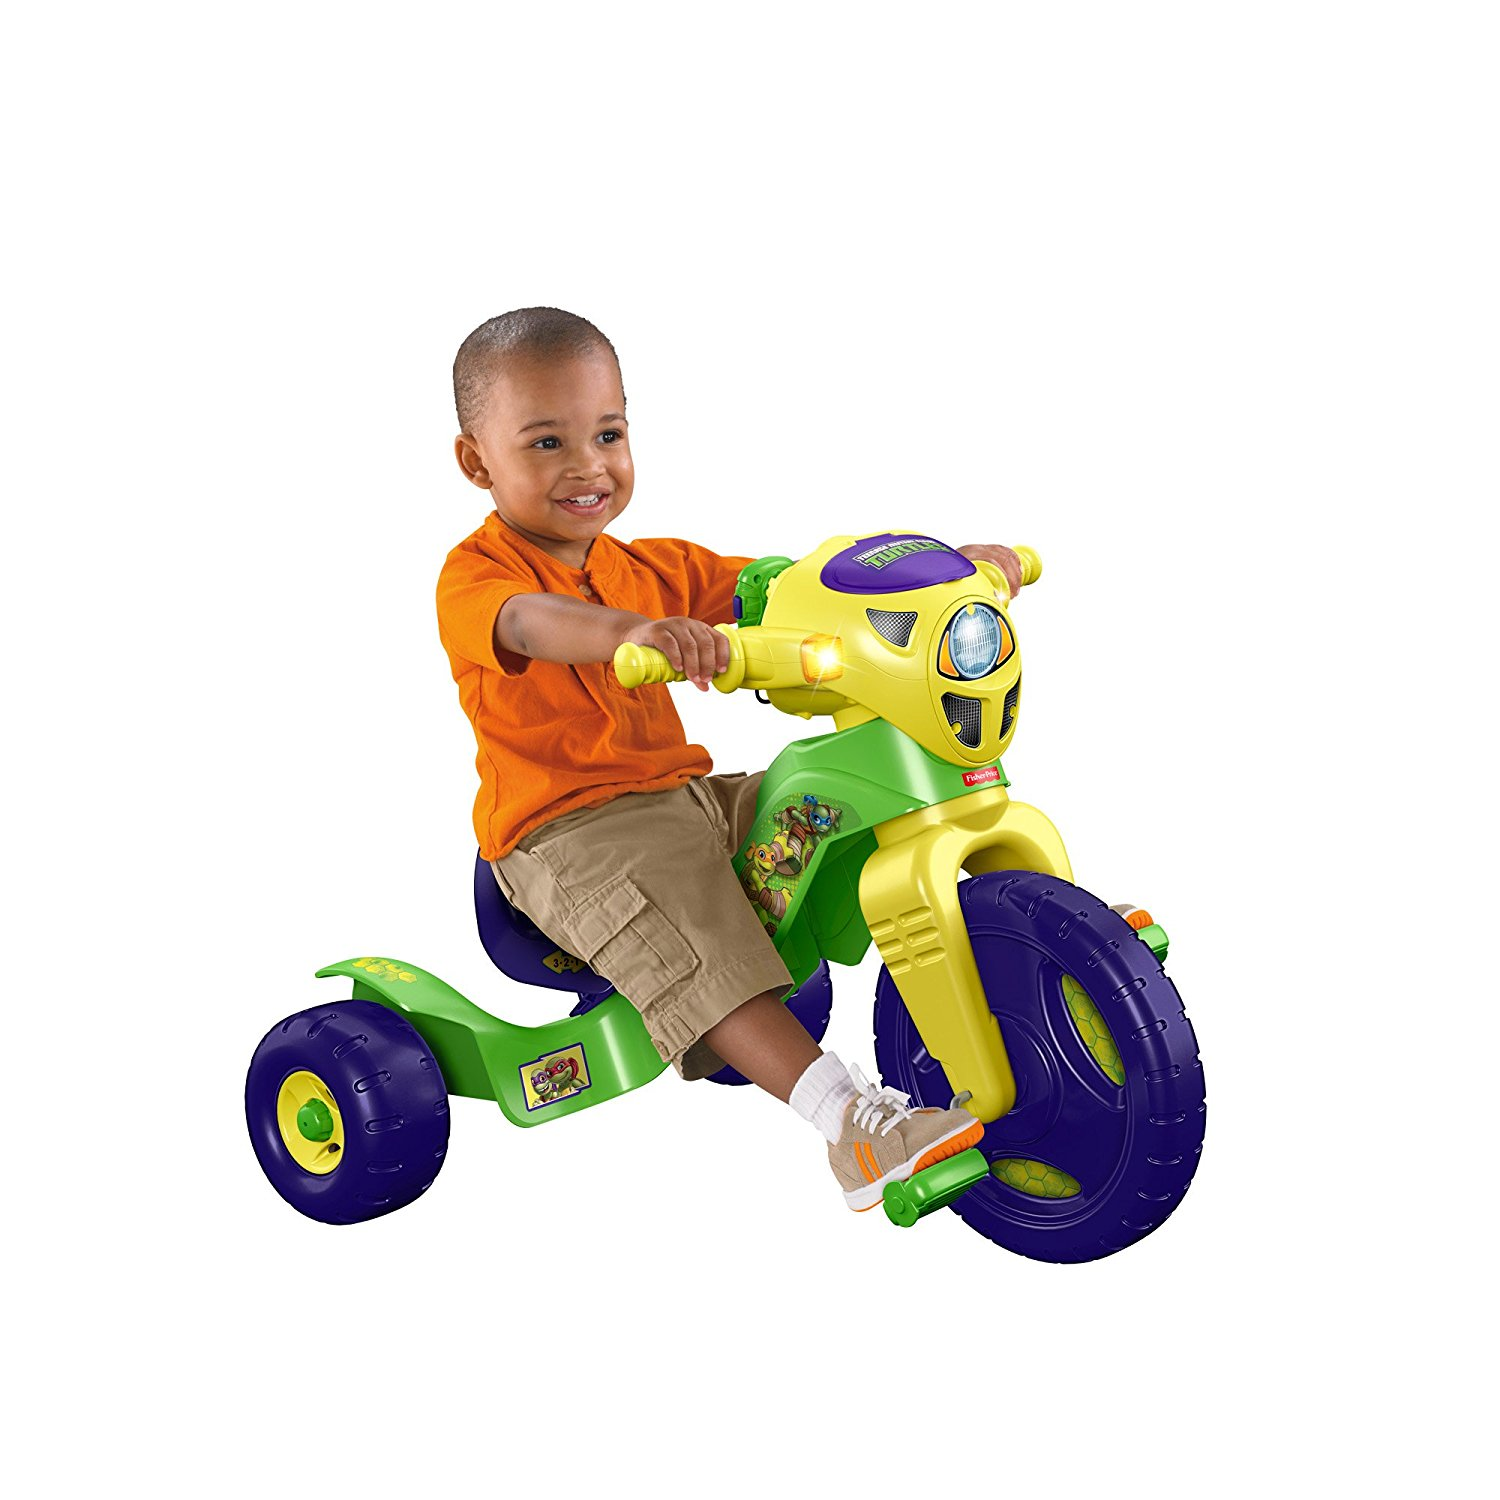 Nickelodeon Teenage Mutant Ninja Turtles Lights & Sounds Trike by Fisher-Price